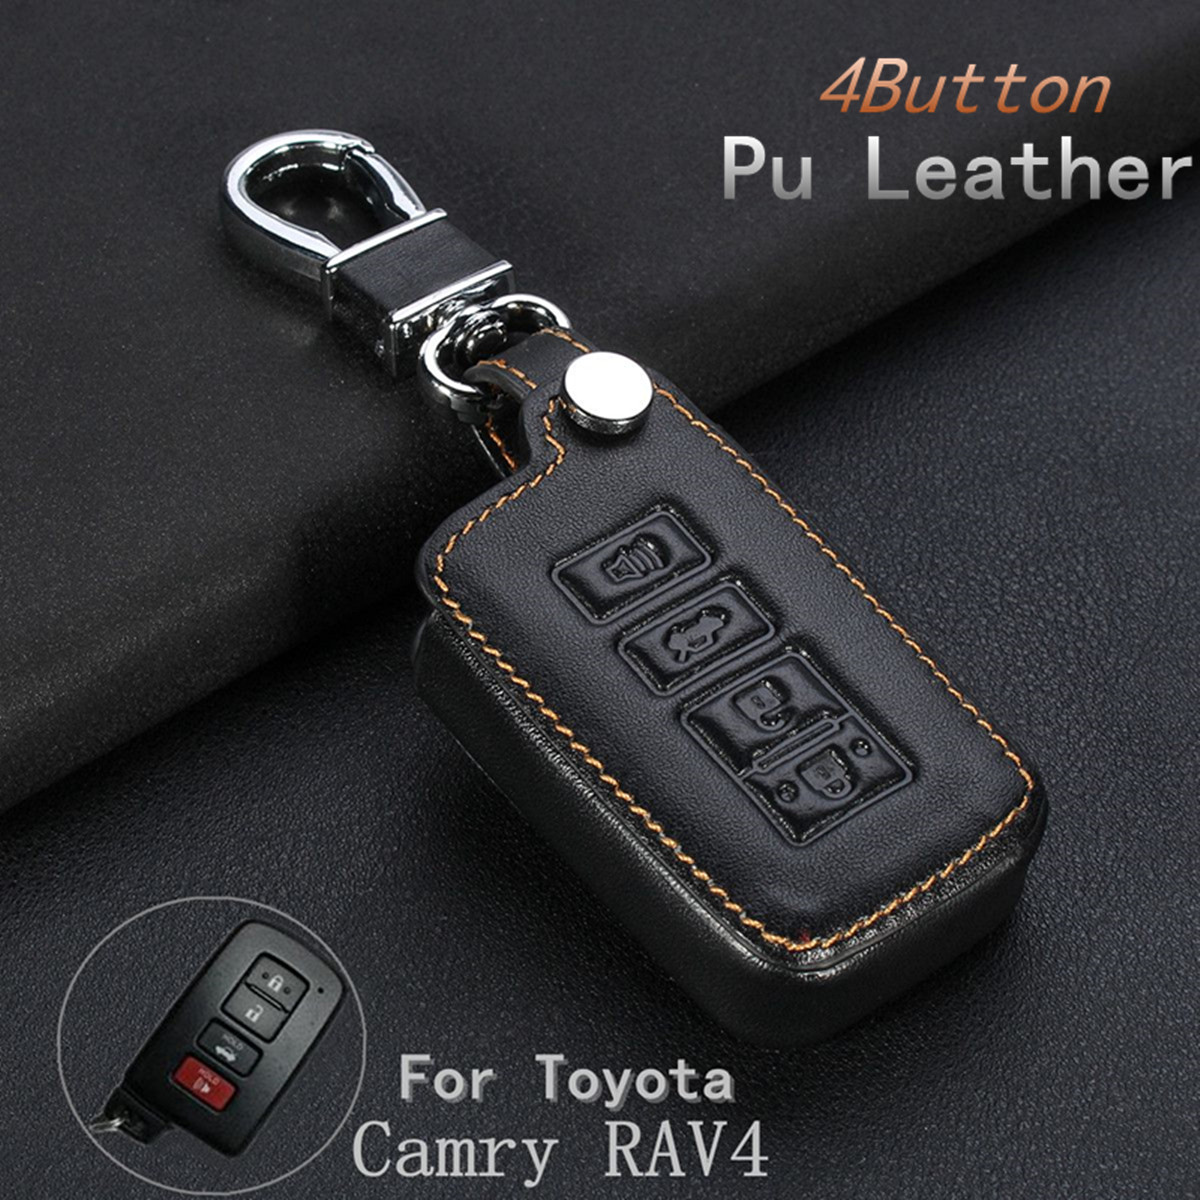 4 Buttons PU Leather Fob Remote Key Shell Case Cover Holder For Toyota Camry RAV4